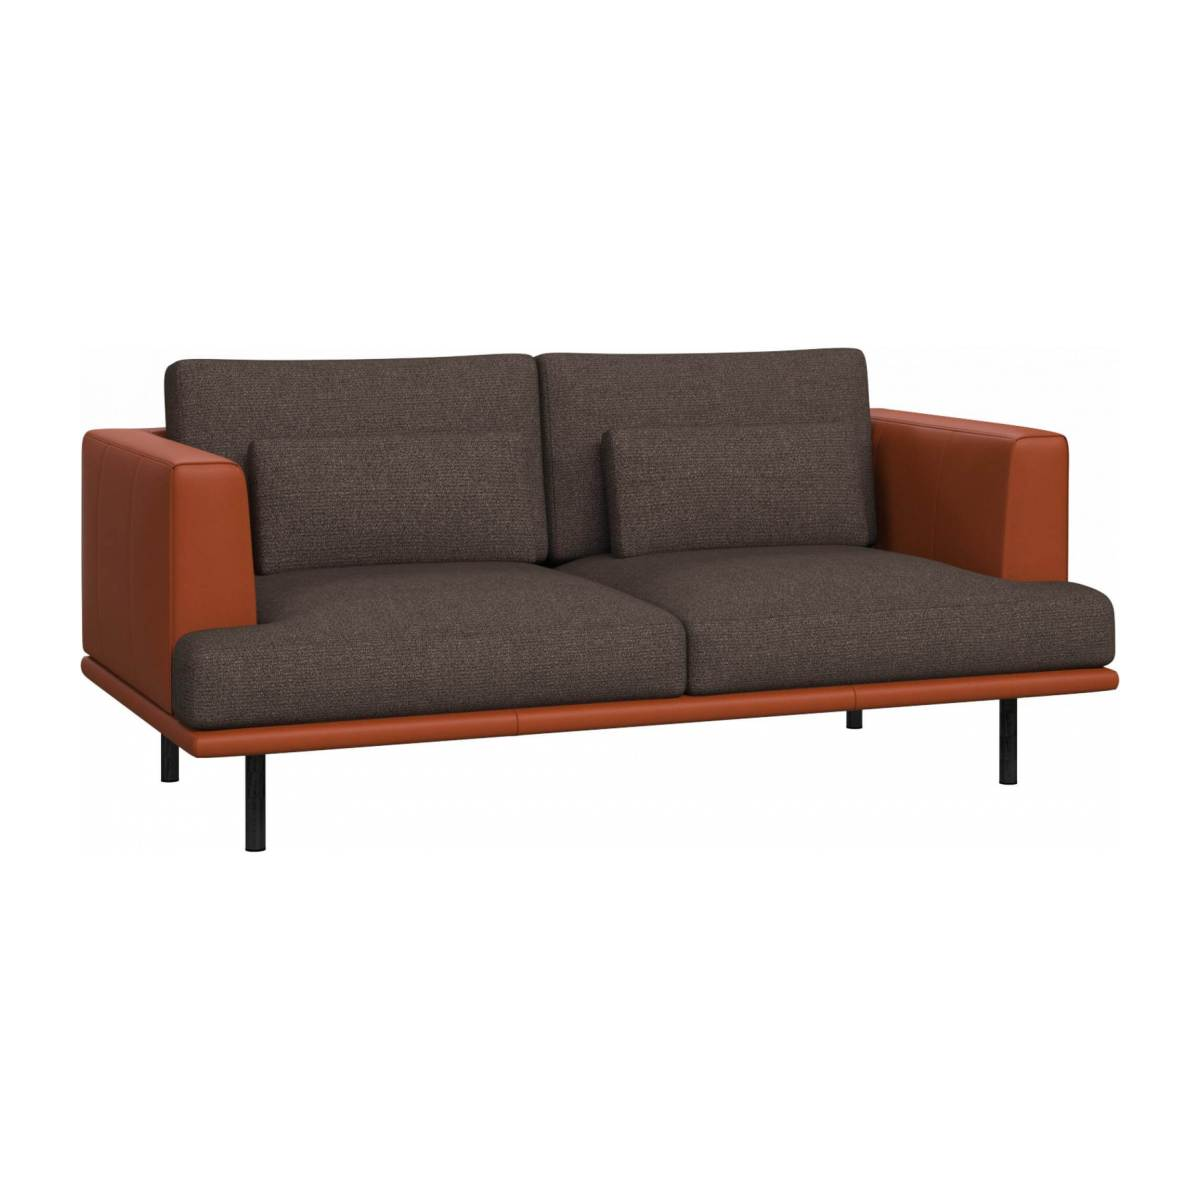 2 seater sofa in Lecce fabric, muscat with base and armrests in brown leather n°3